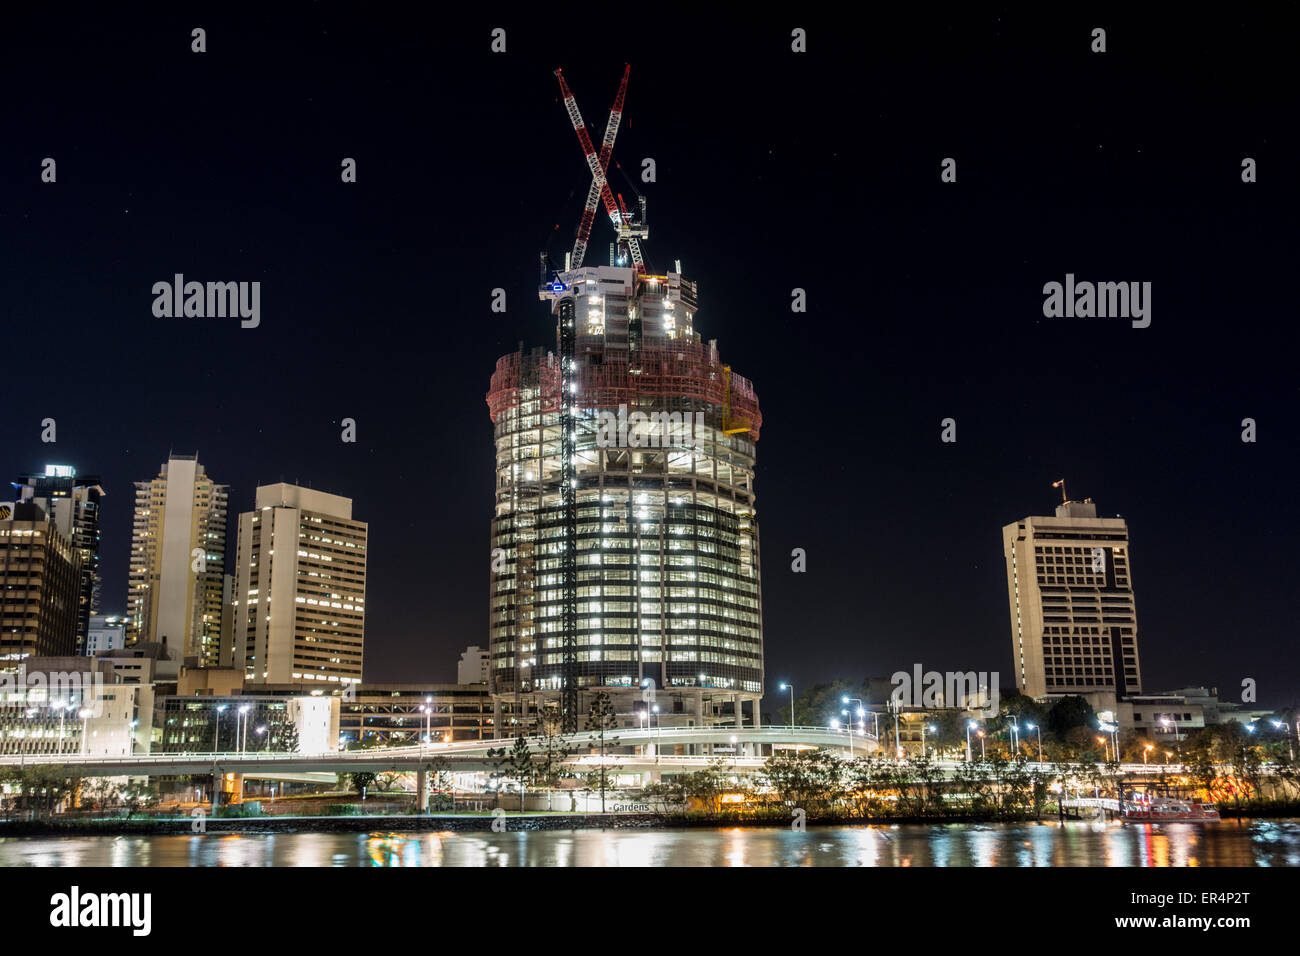 Building Construction Beside Brisbane River - Stock Image